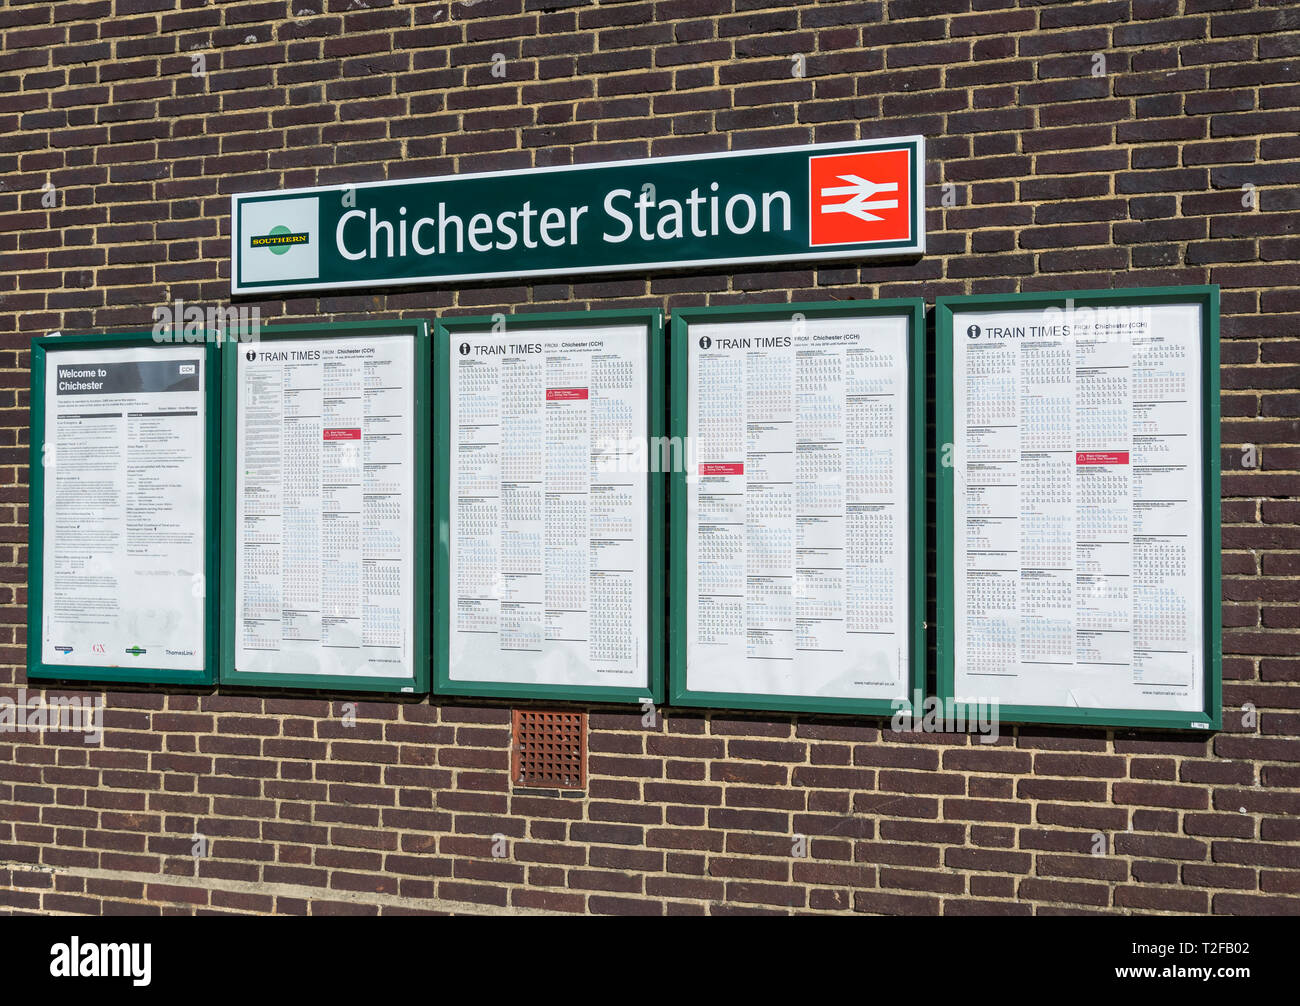 Railway Timetable Stock Photos & Railway Timetable Stock